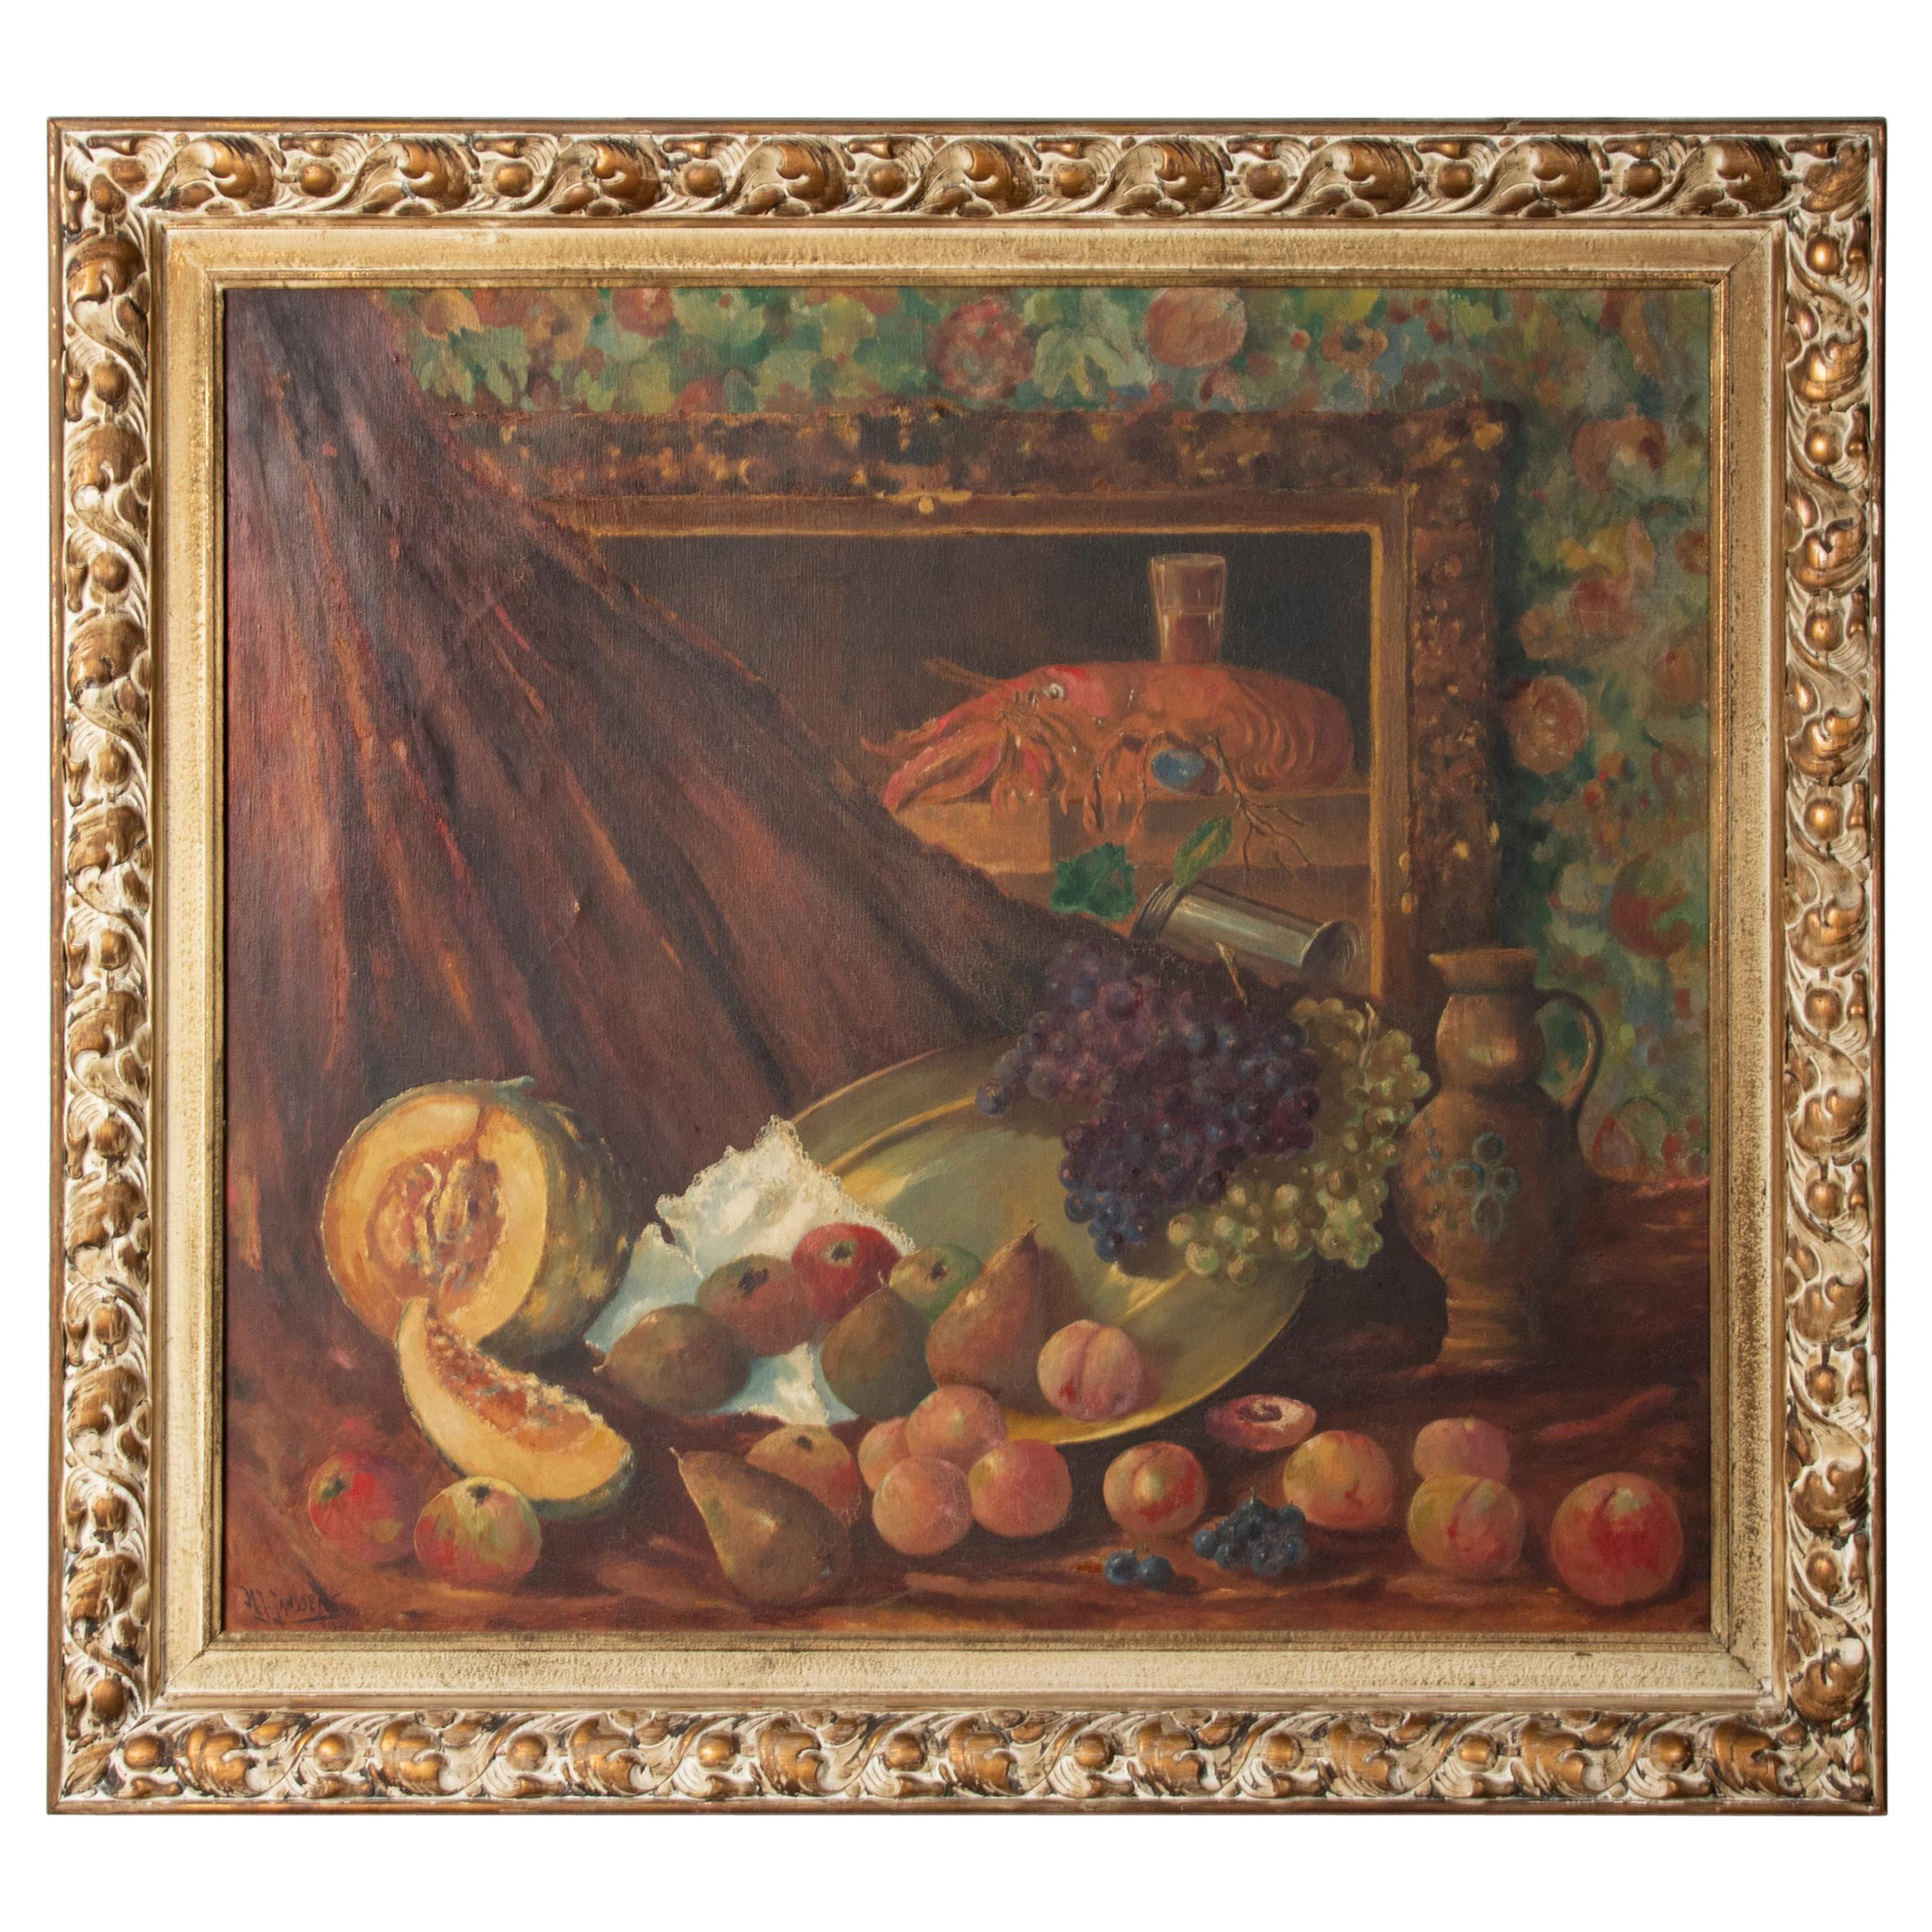 Early 20th Century Classic Oil Painting Still Life with Fruits by HJ. Janssens